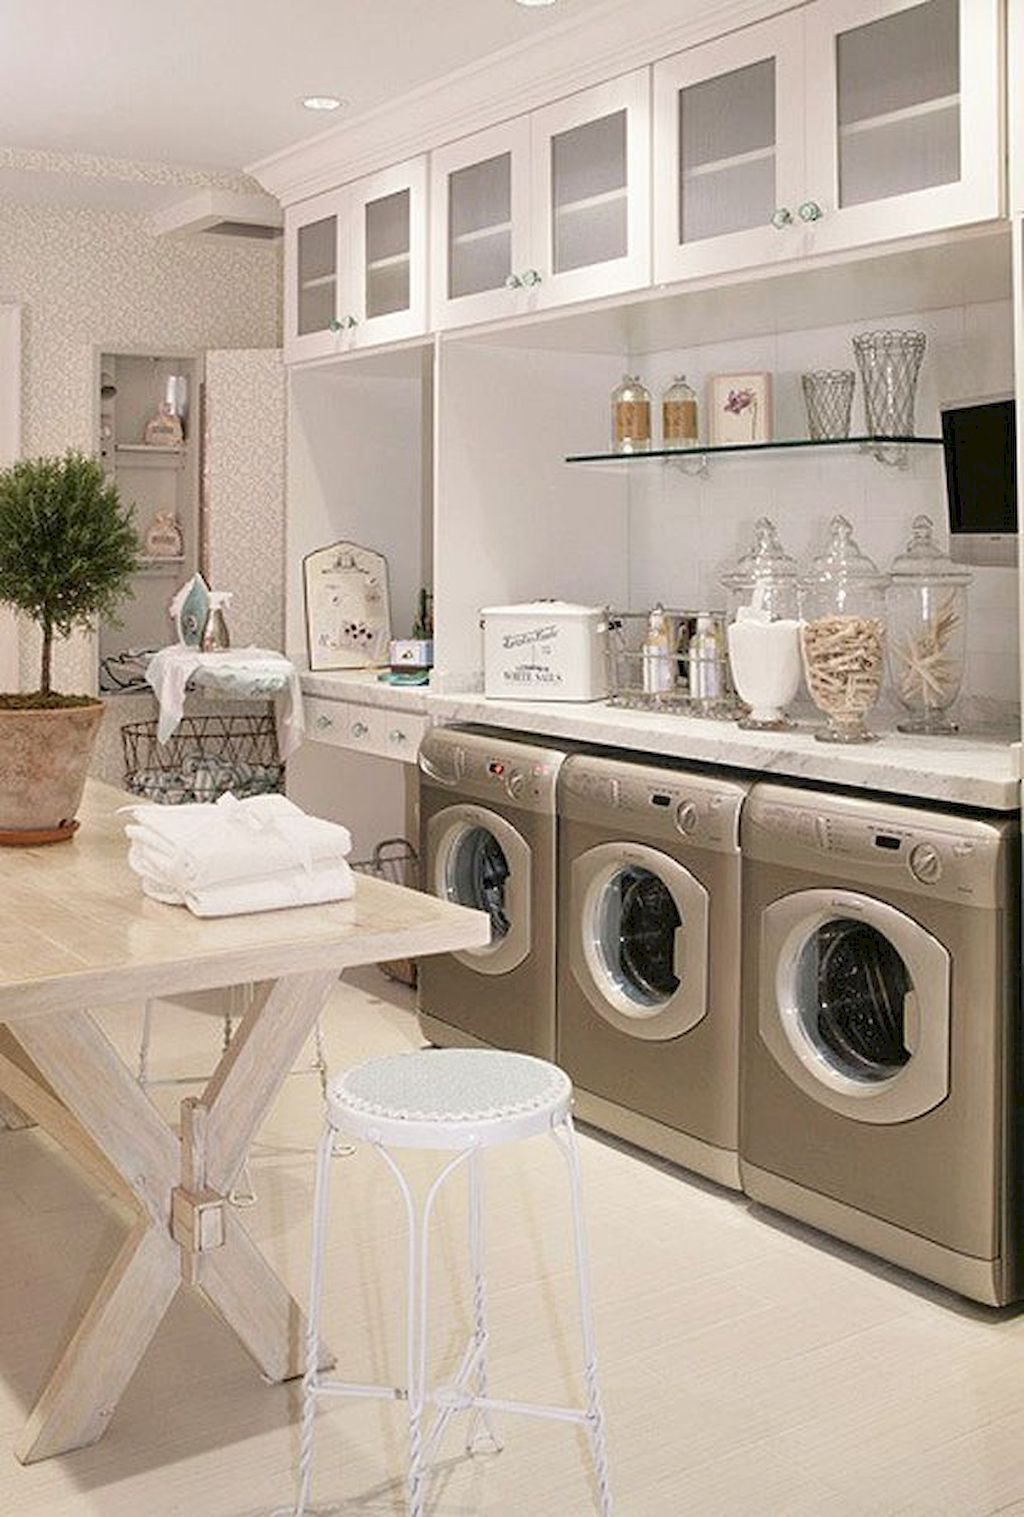 80 functional small laundry room design ideas dream on extraordinary small laundry room design and decorating ideas modest laundry space id=91269